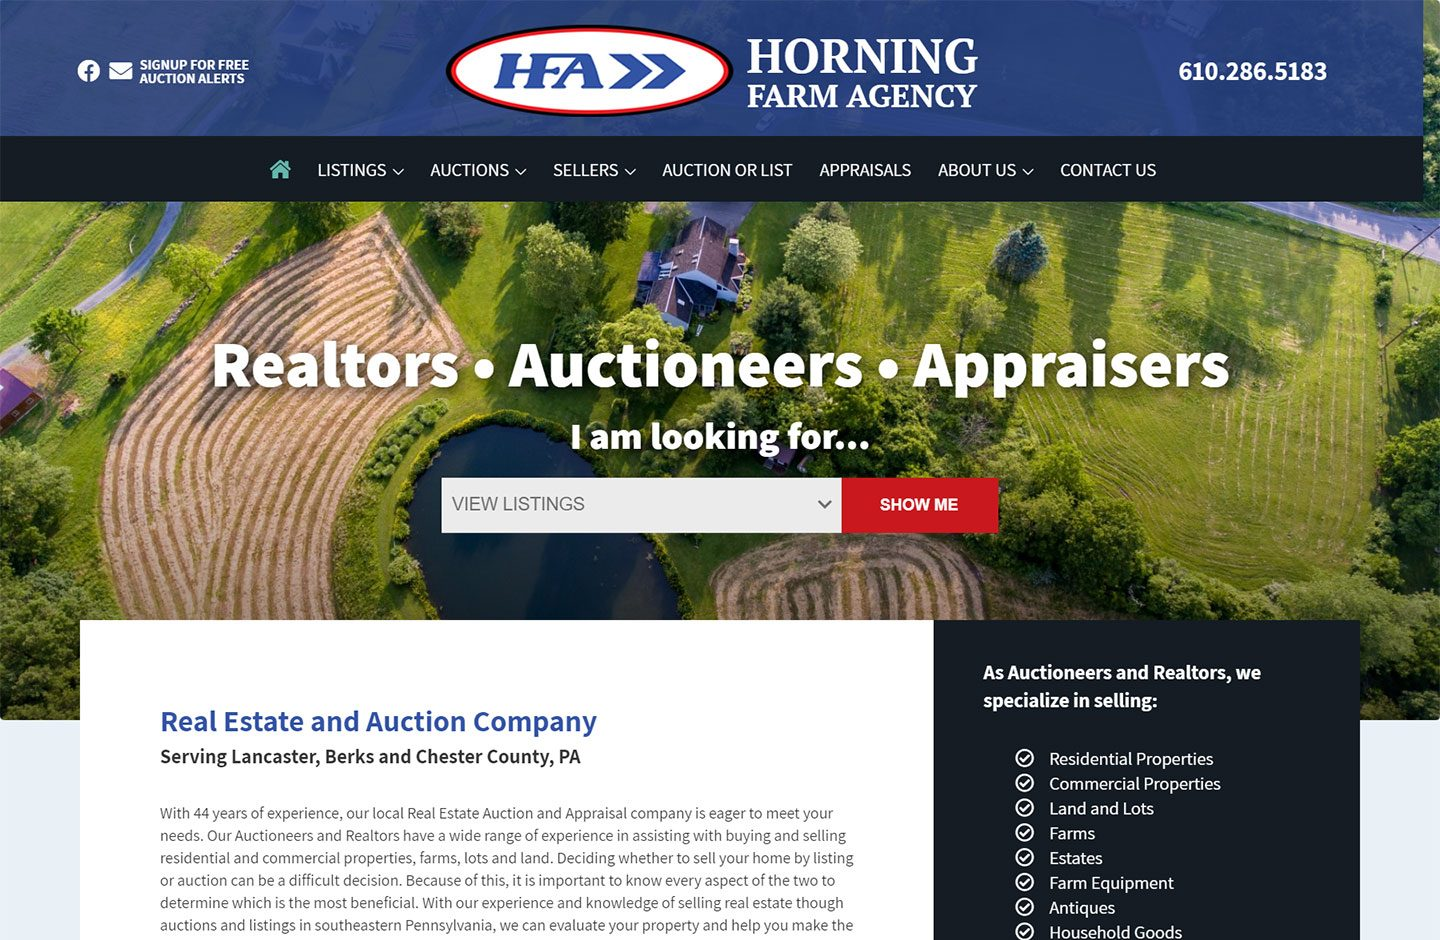 Horning Farm Agency